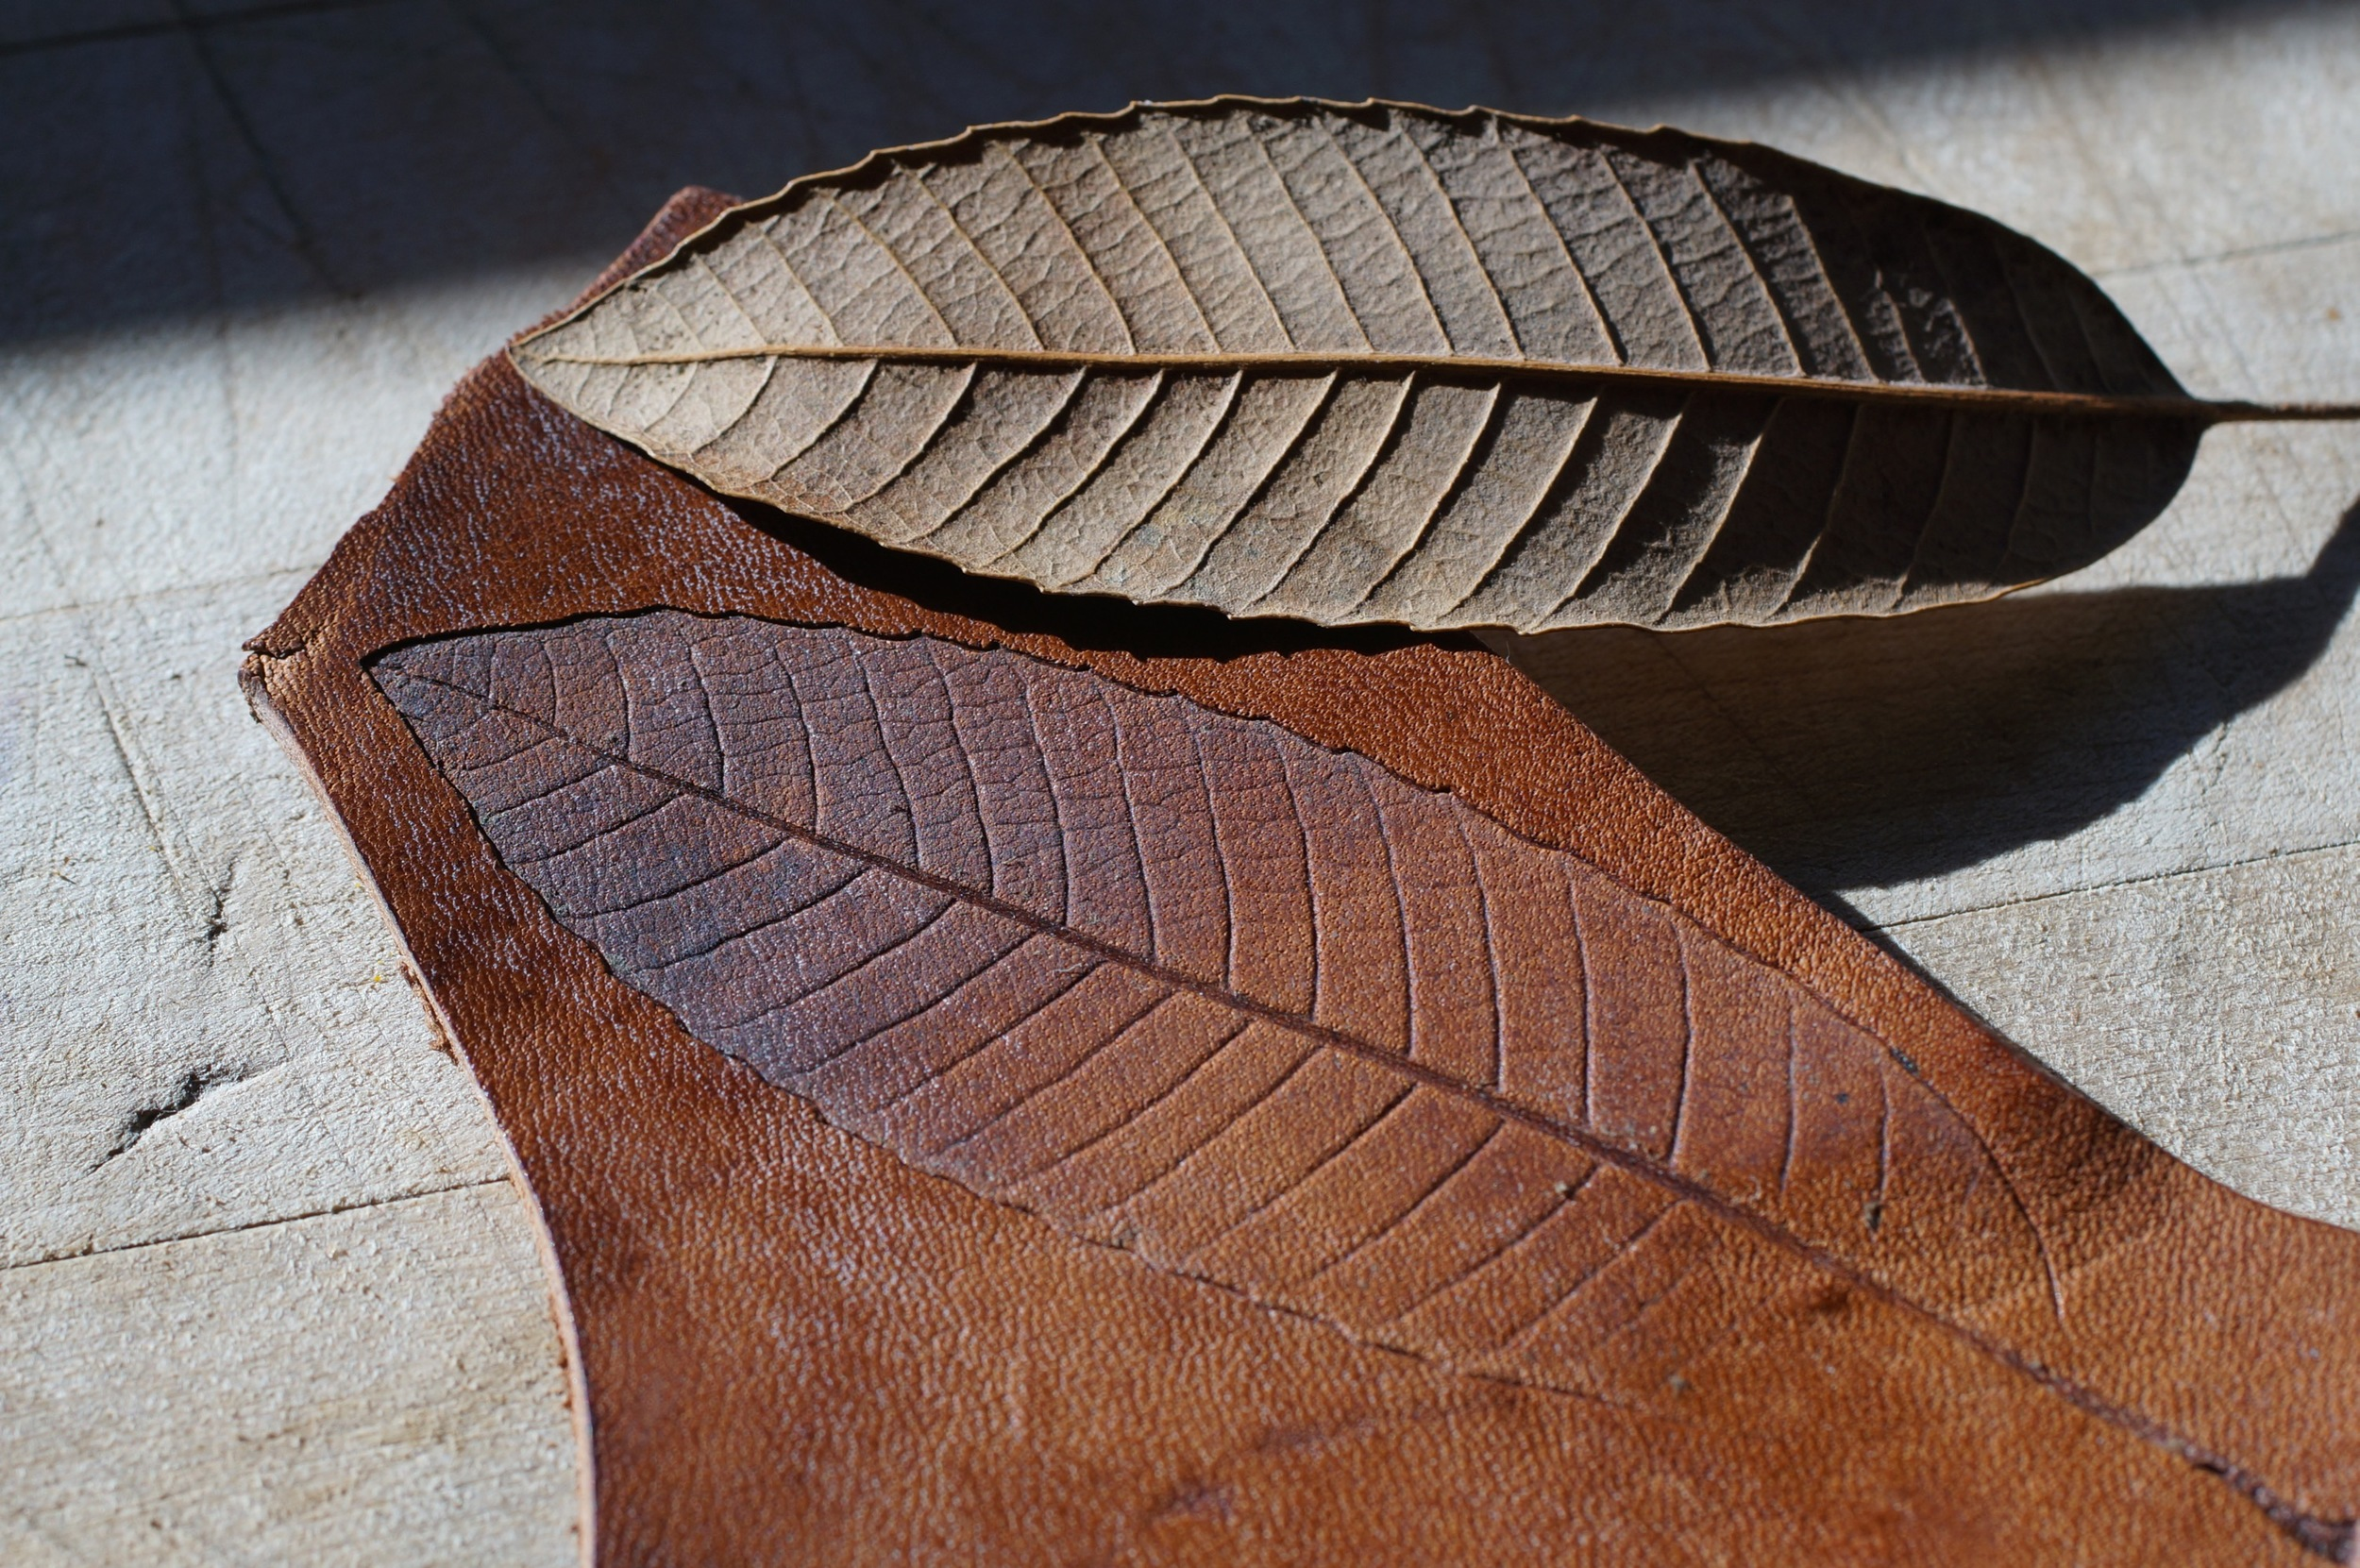 An idea I've been toying with, making leaf impressions in leather.